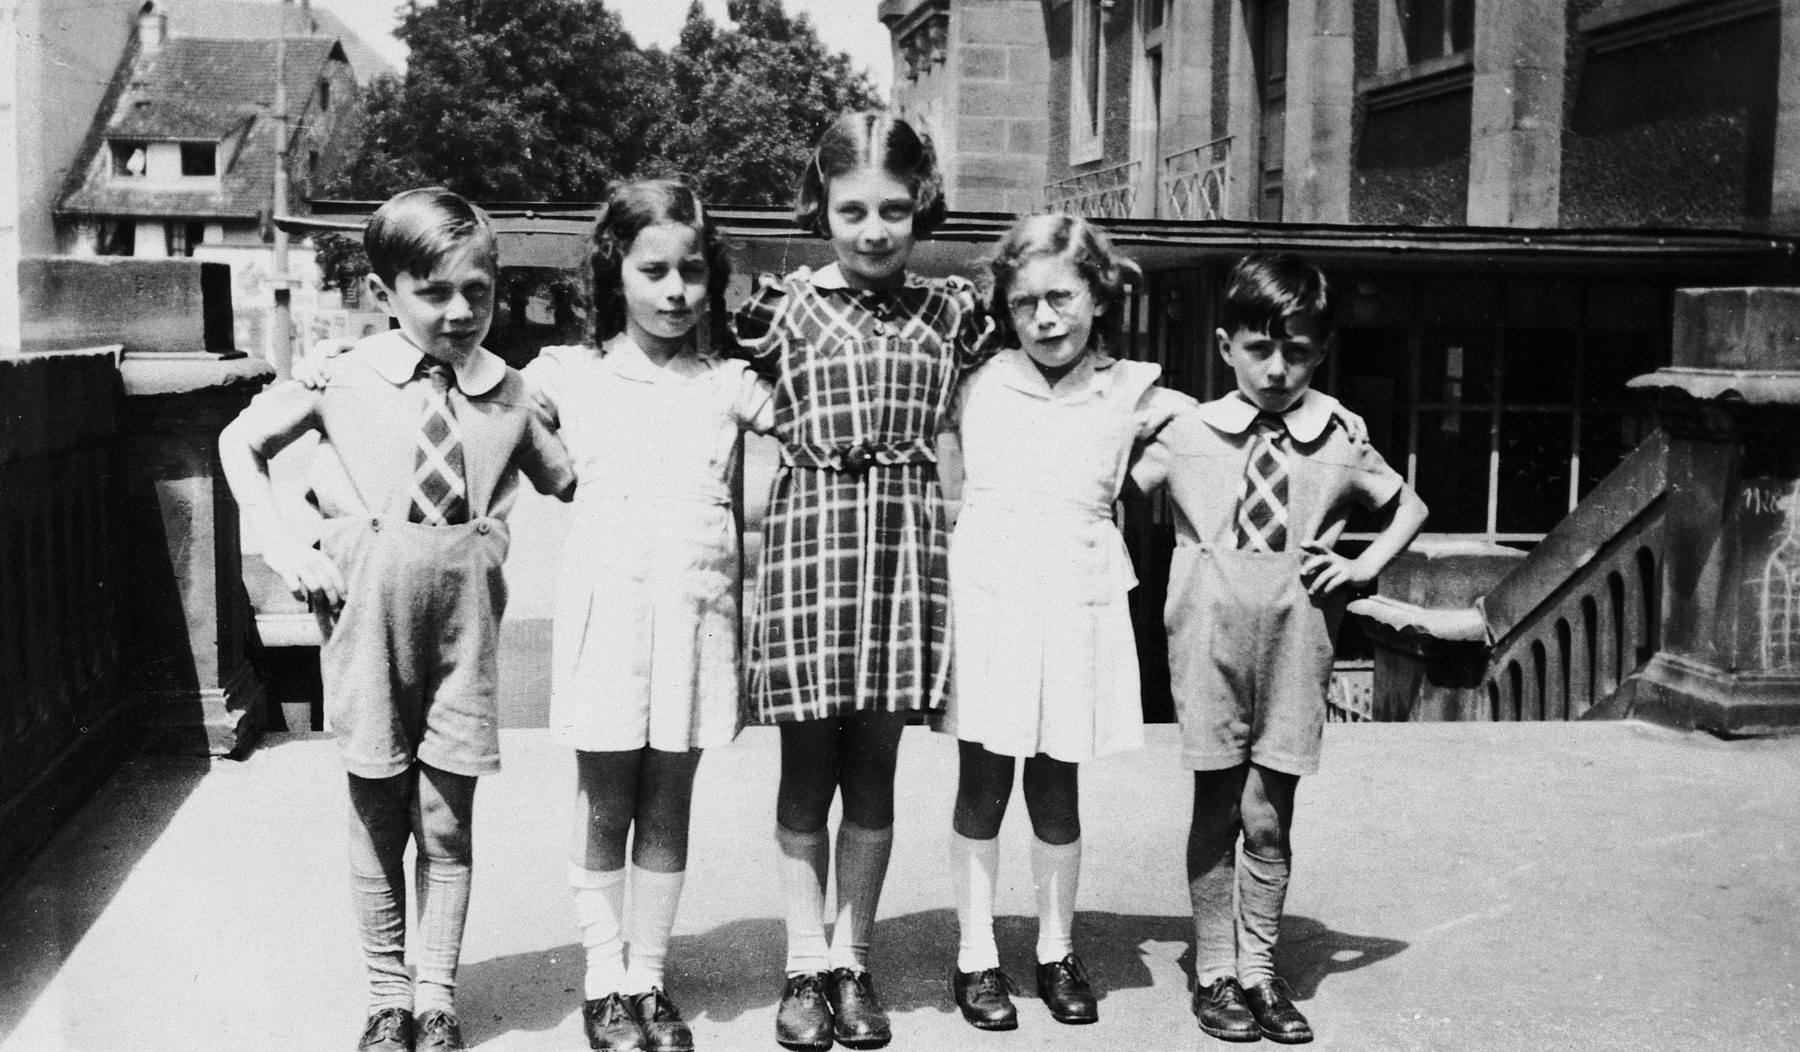 Five Jewish cousins pose together in Colmar, France.  Marianne Schwab is in the center.  Her twin brothers, Pierre and Louis are on the ends and her cousins are in-between them.